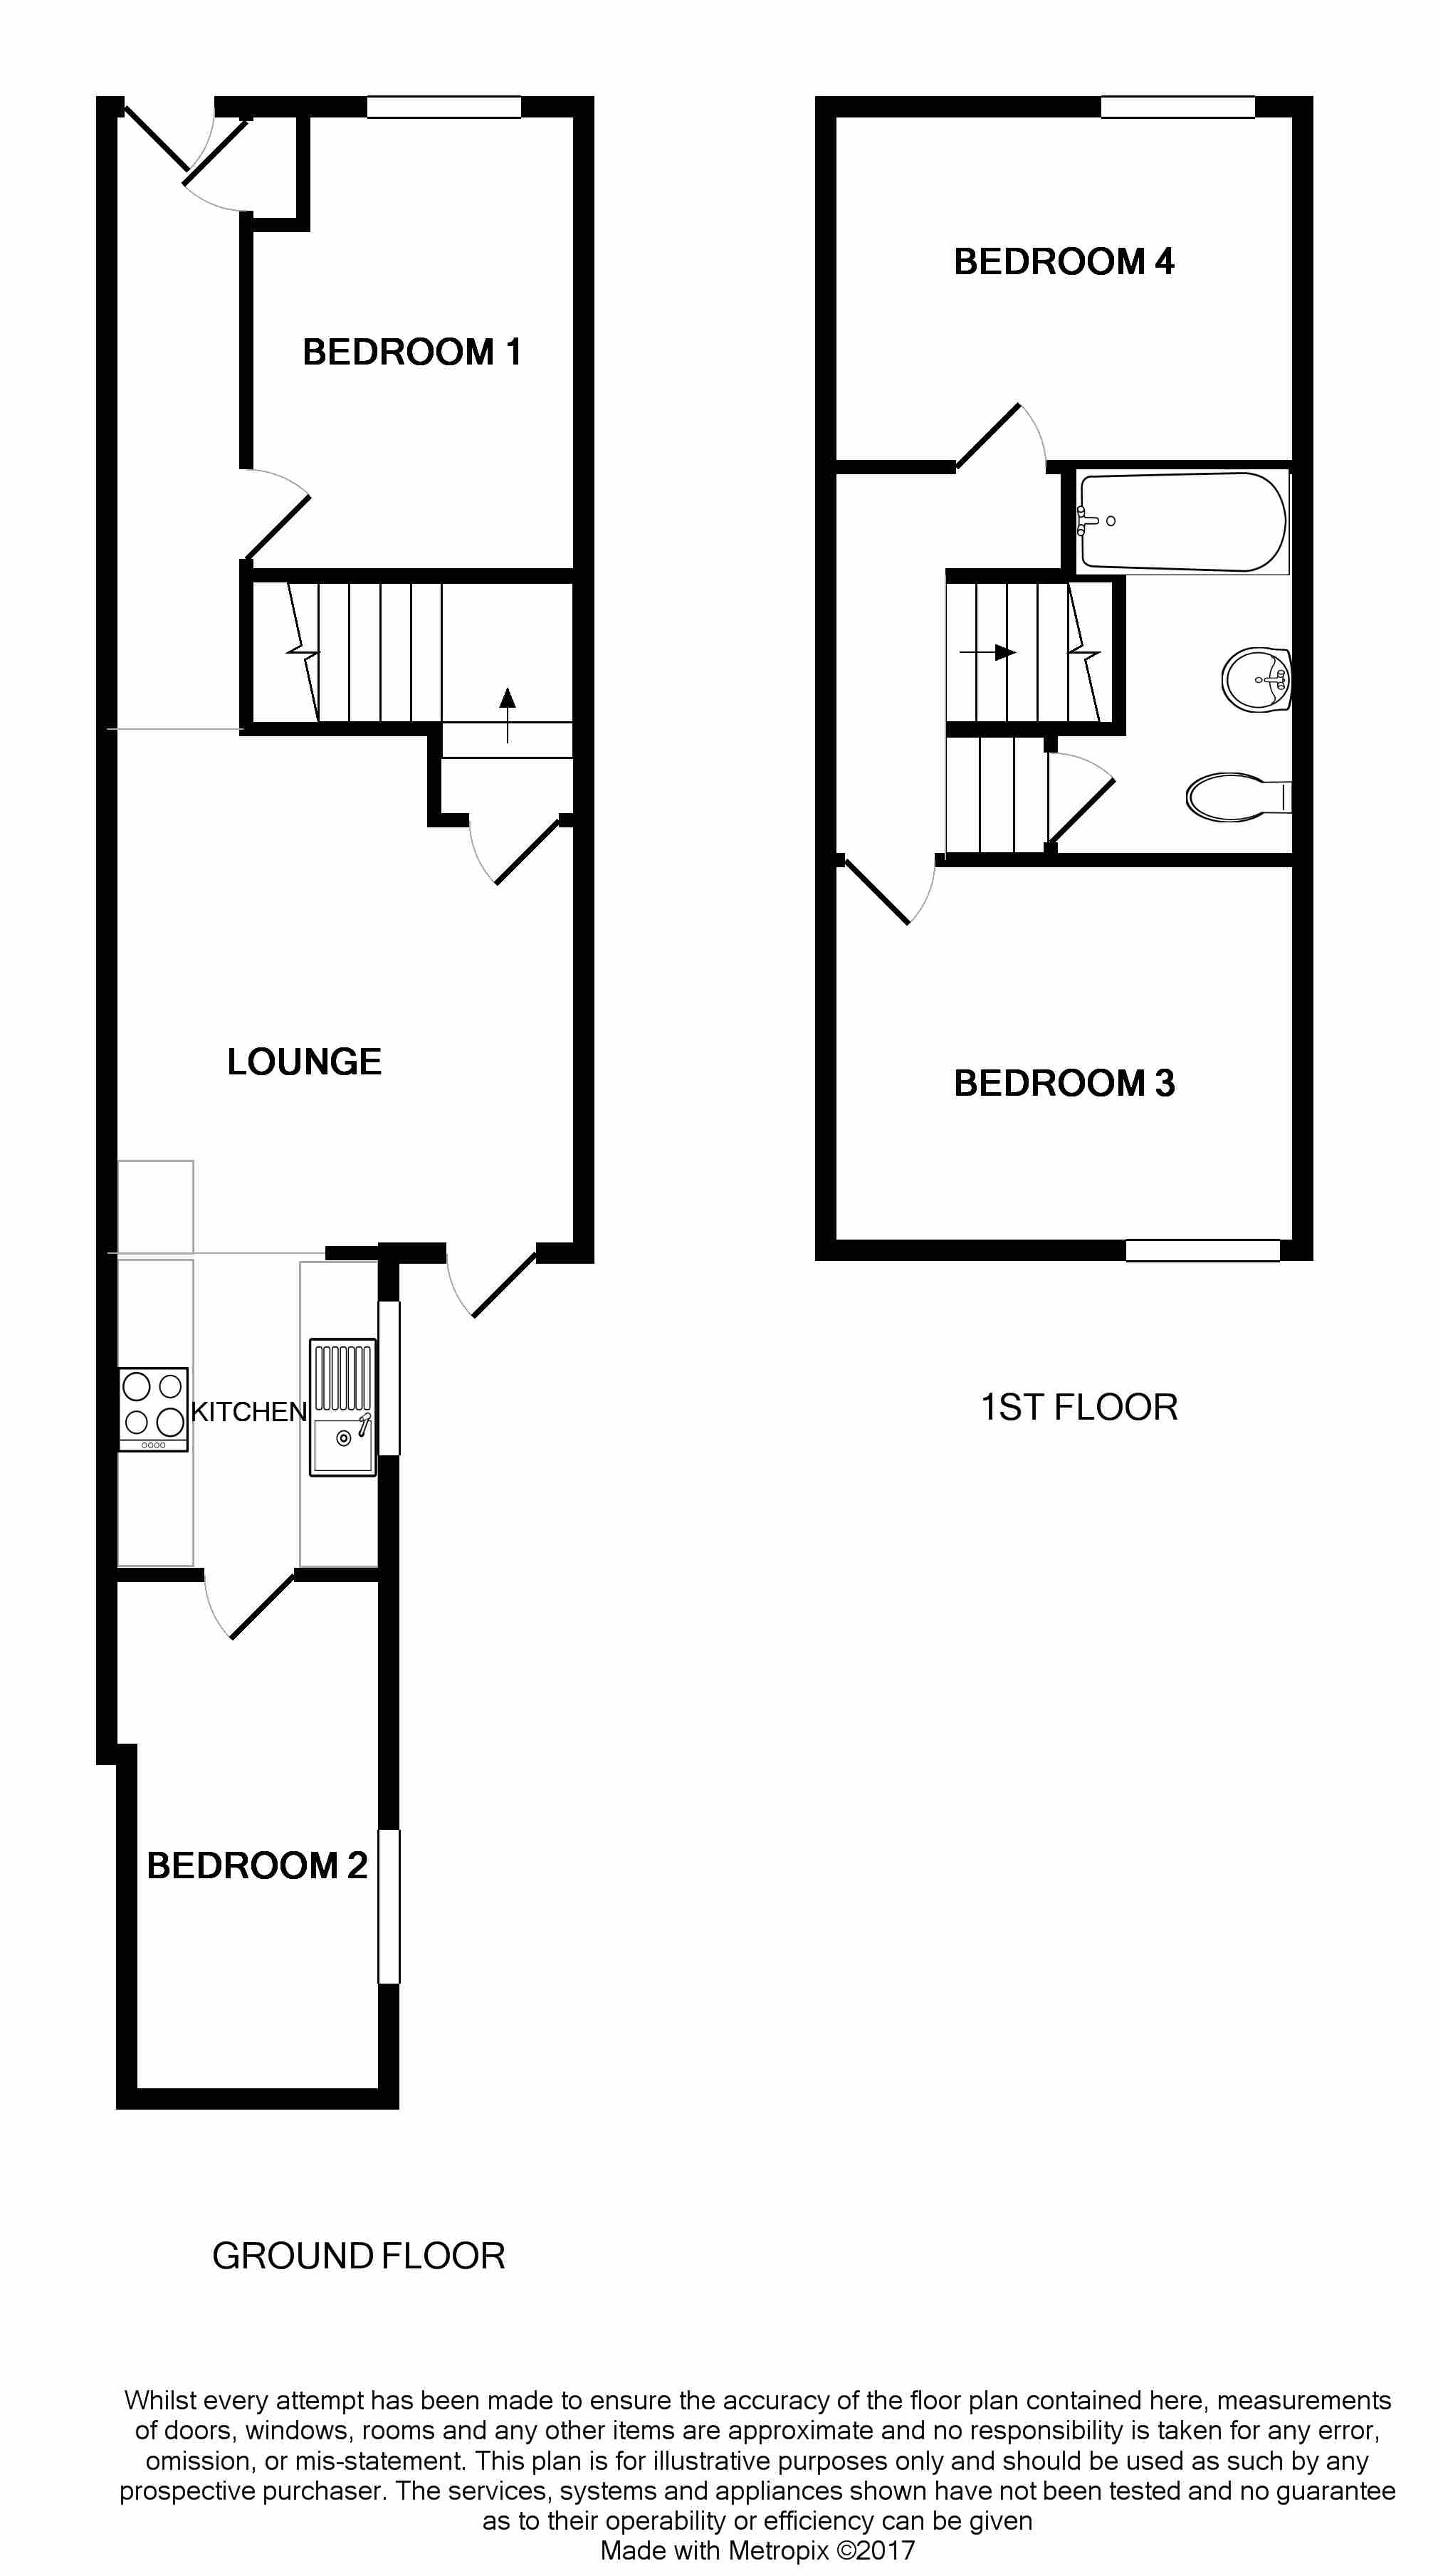 All floors plan